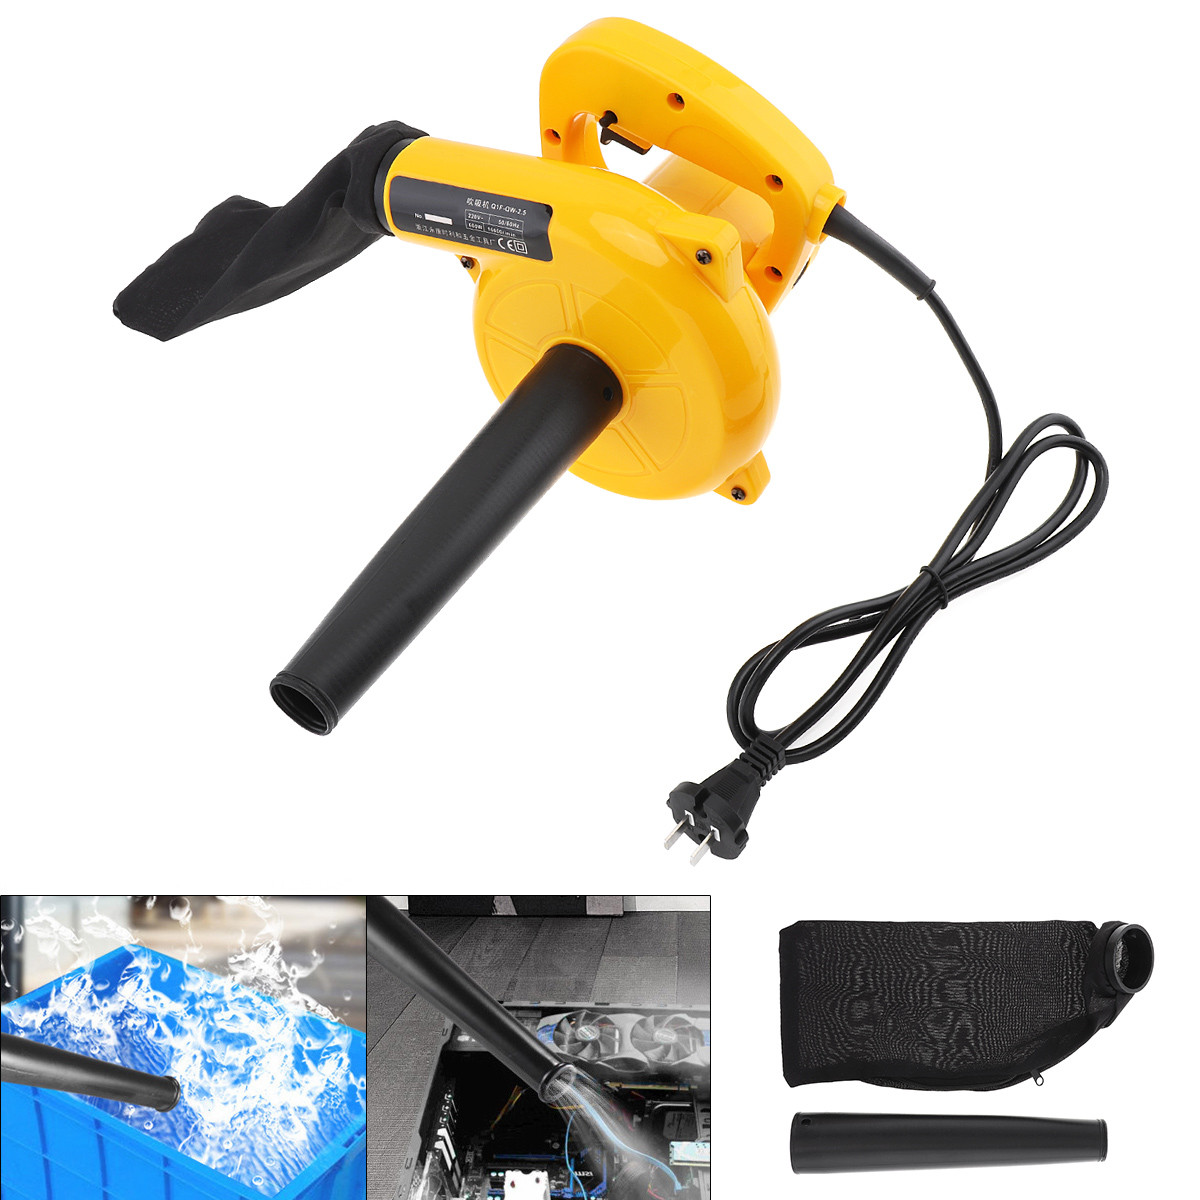 220V 600W 16000rpm Multifunctional Portable Electric Blower Duster Set with Suction Head 1.2L Collecting Bag for Dust Collector|Blowers| |  - title=